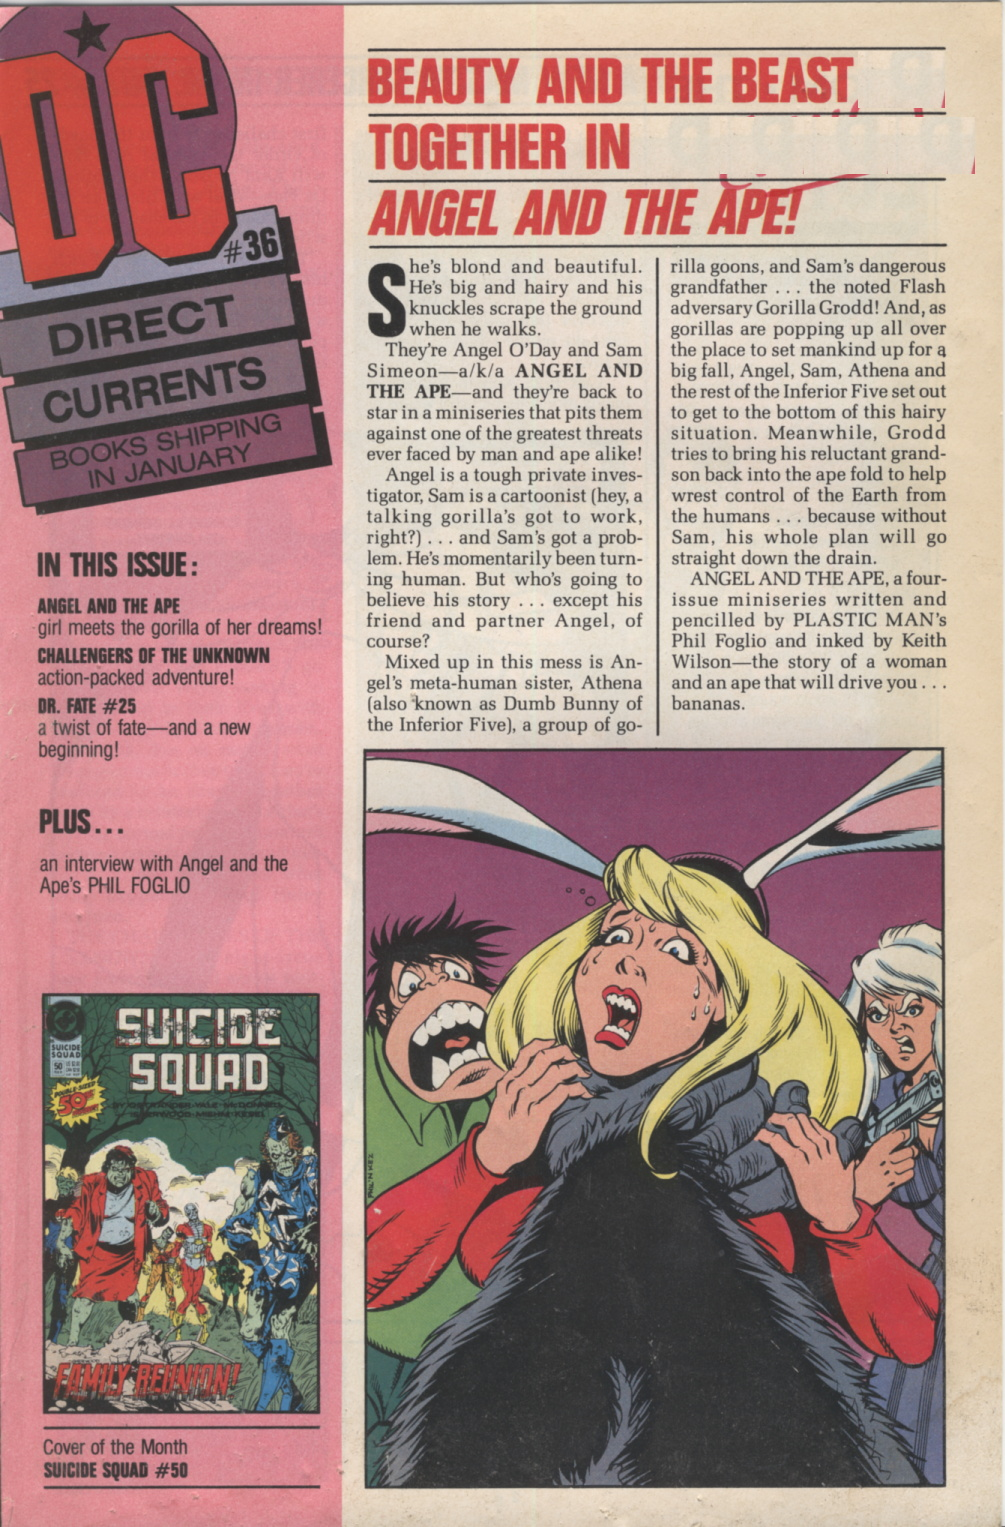 Time Capsule: DC Direct Currents 36 January 1991